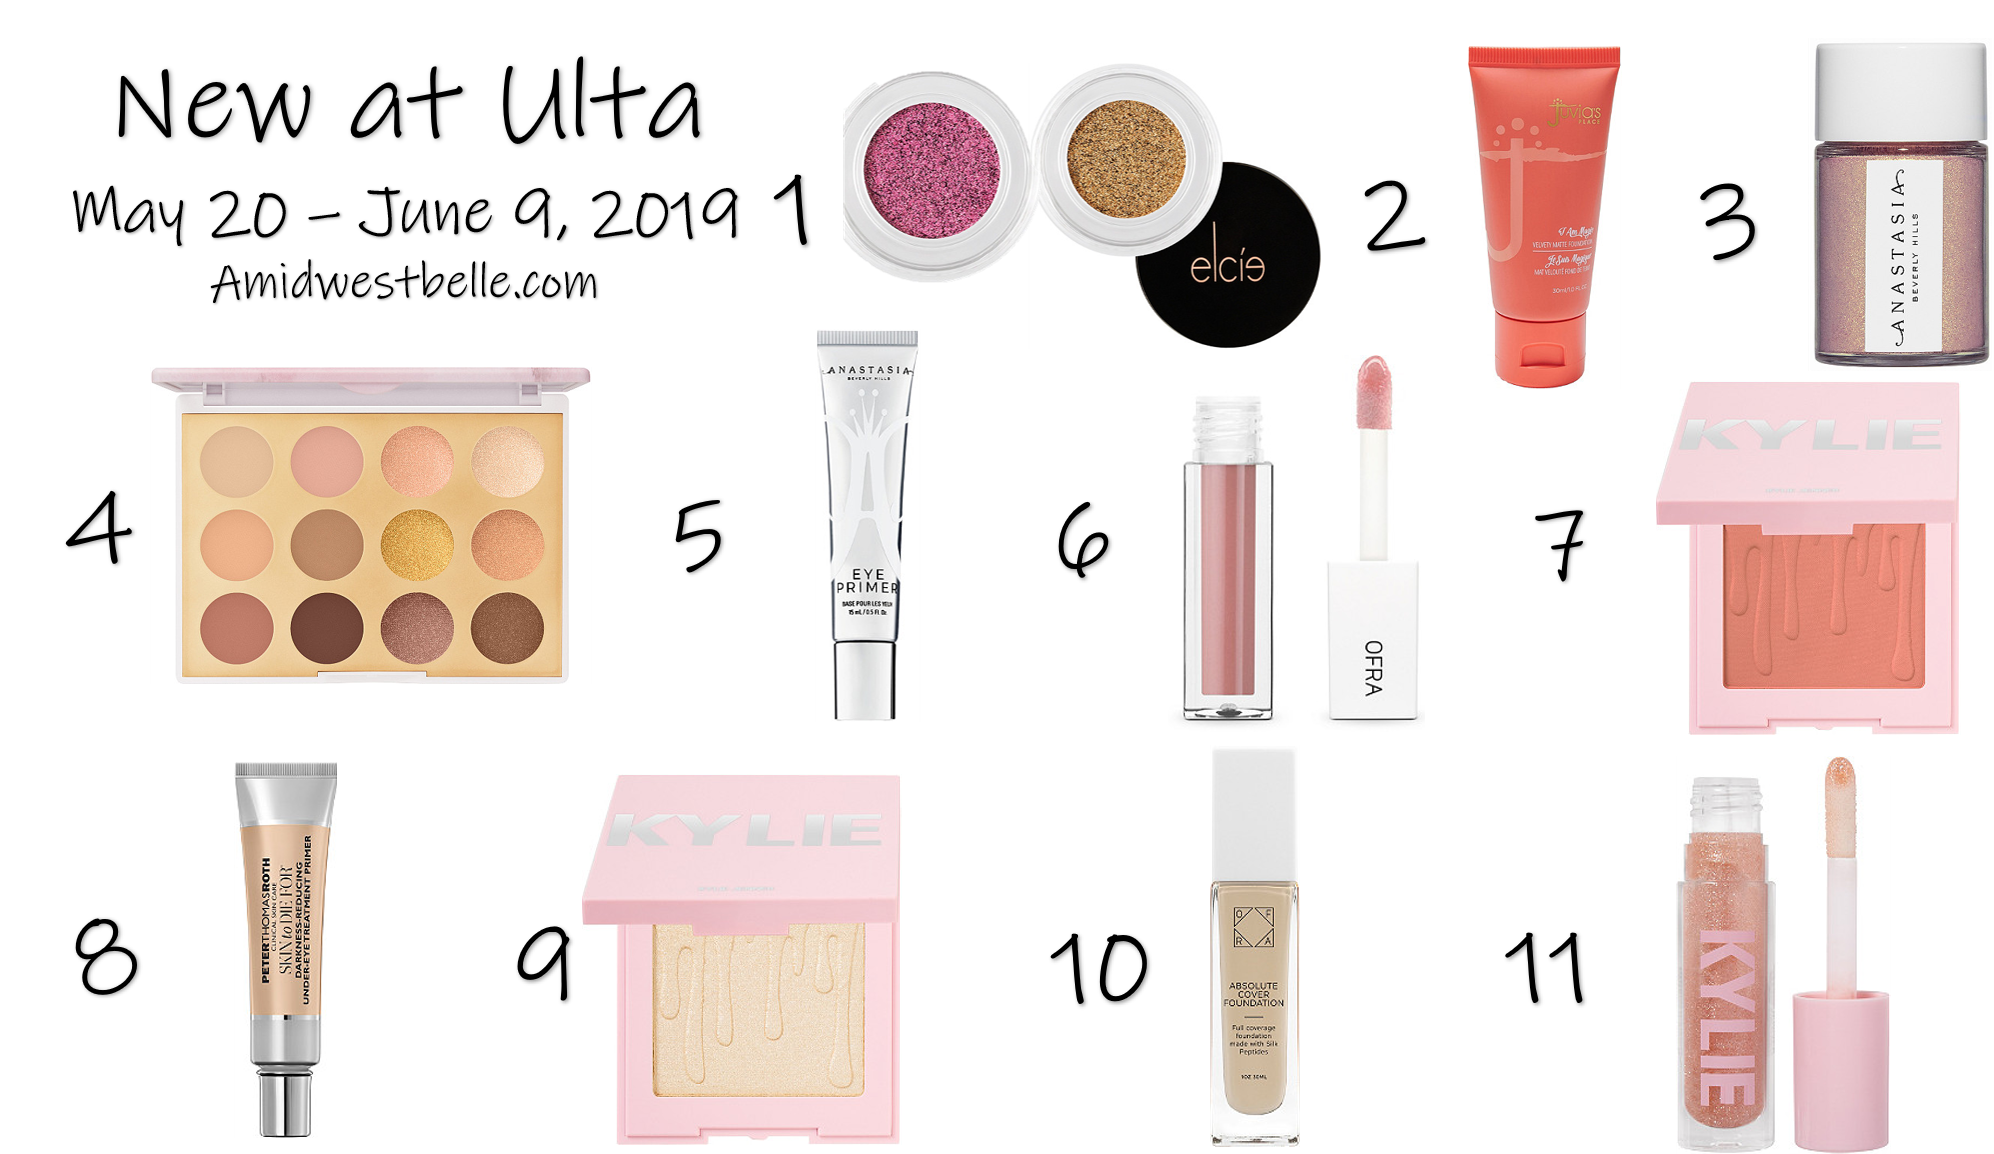 New At Ulta | May 20 - June 9, 2019 - A Midwest Belle